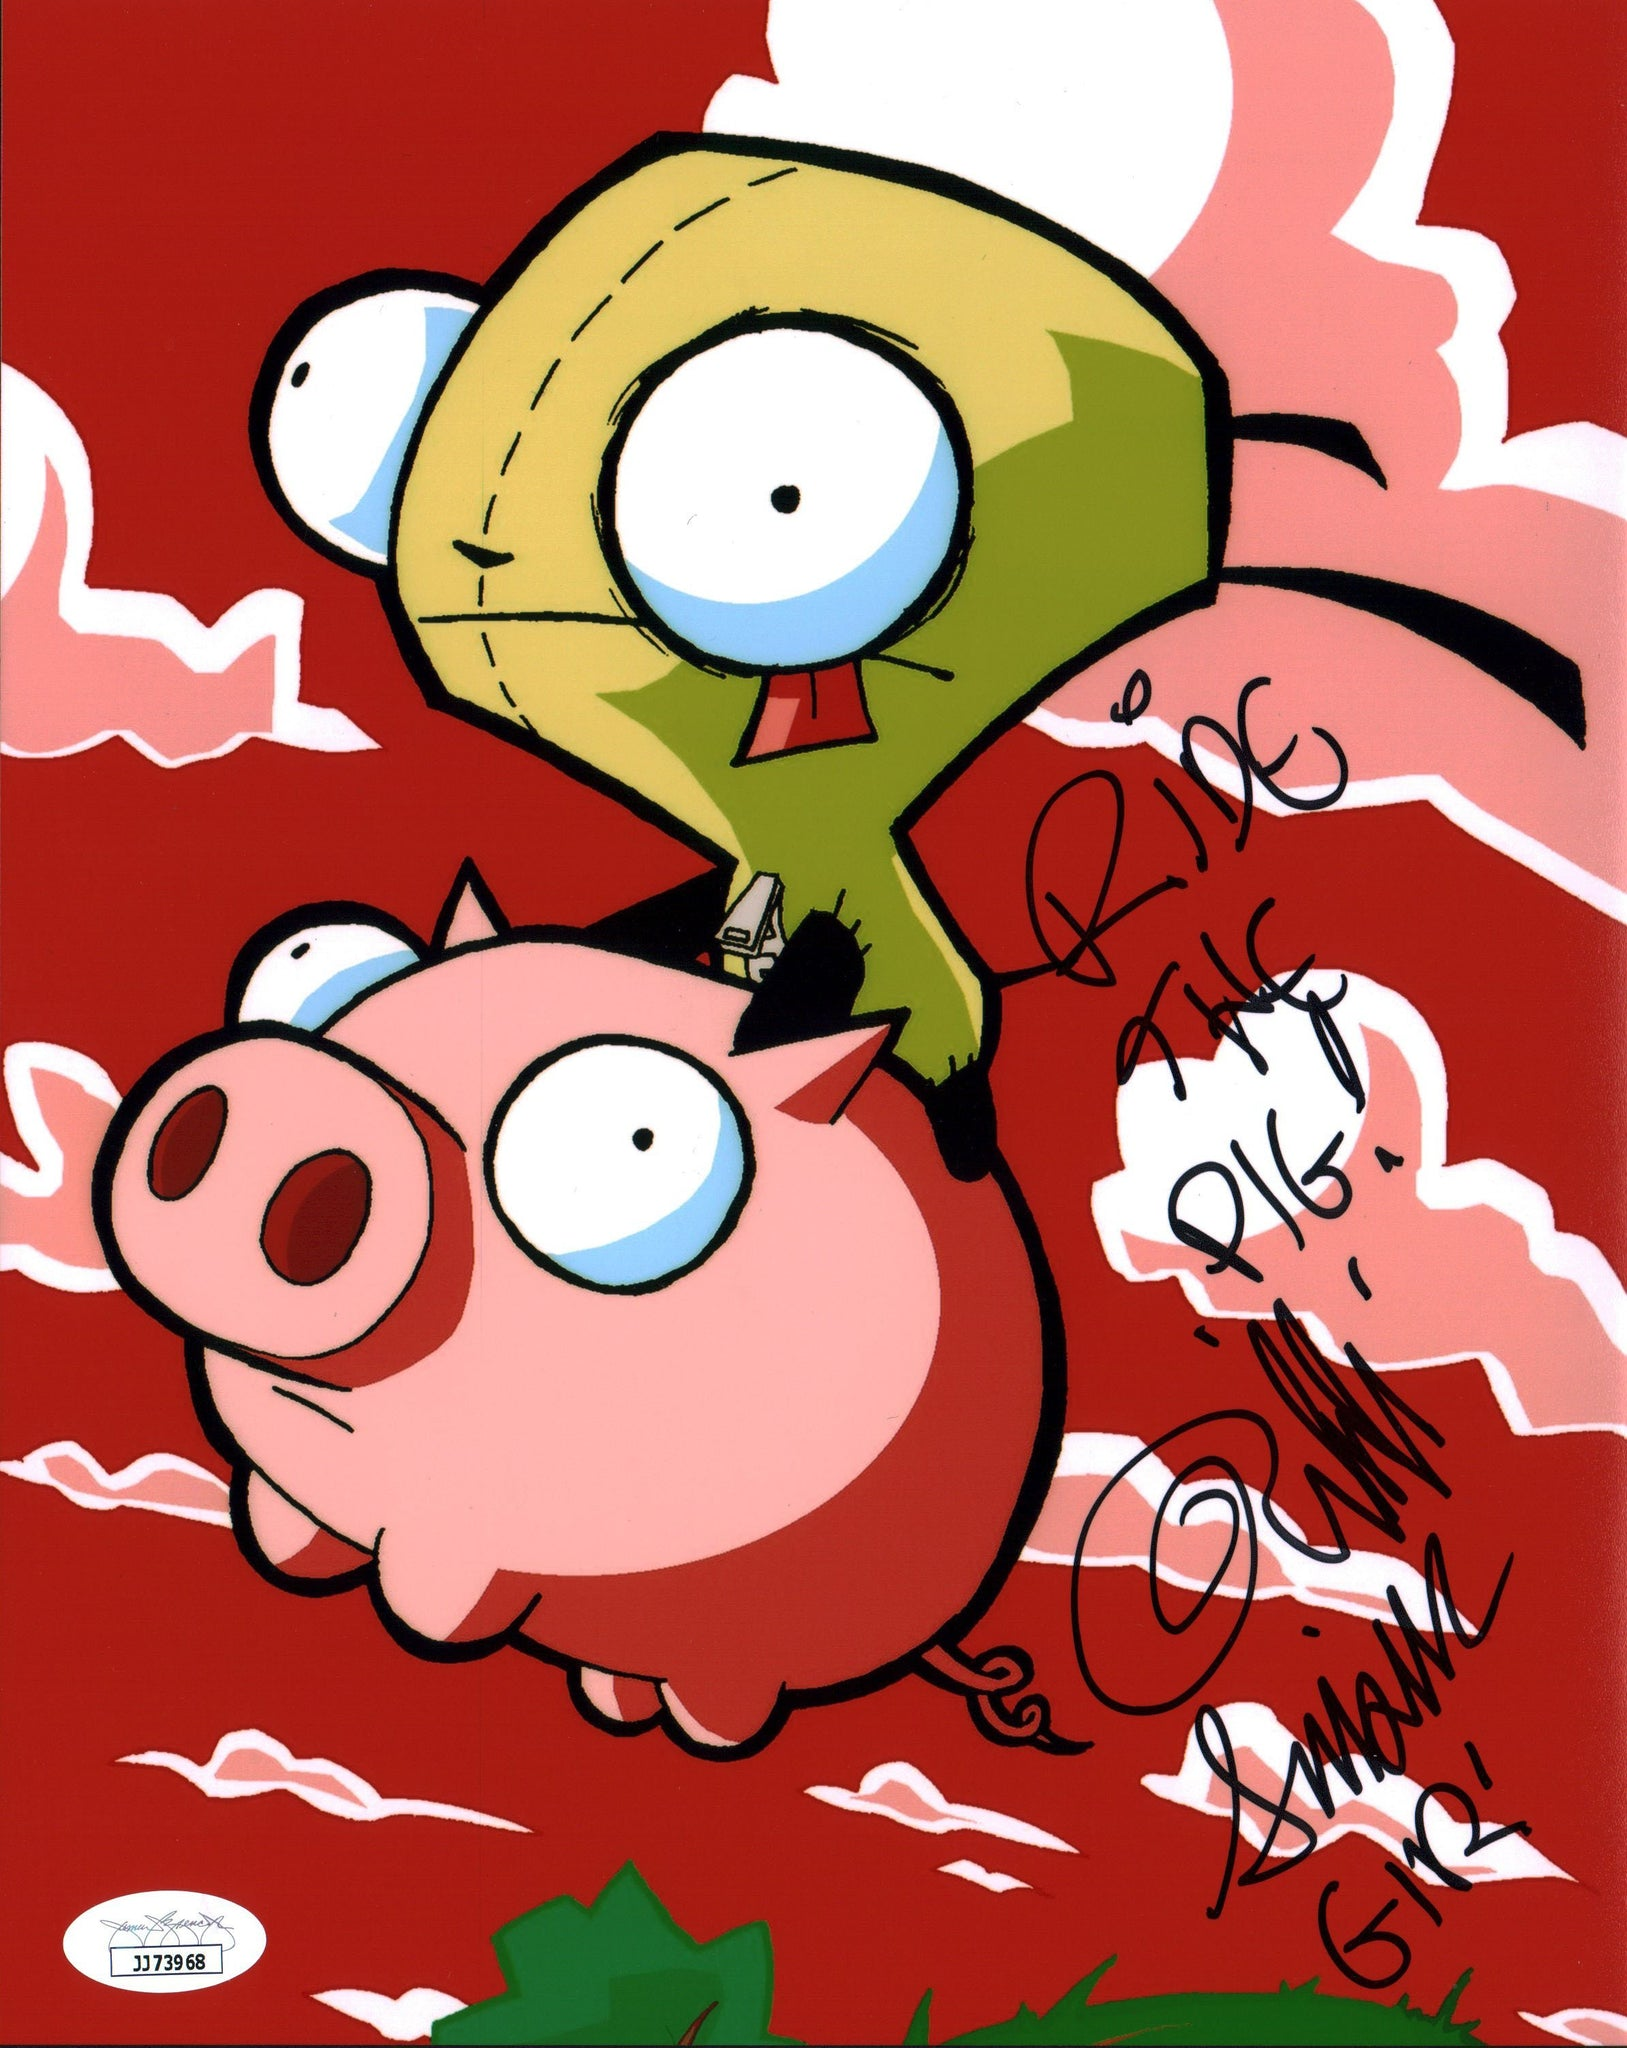 Rikki Simons Invader Zim 8x10 Photo Signed Autographed JSA Certified COA Auto GalaxyCon